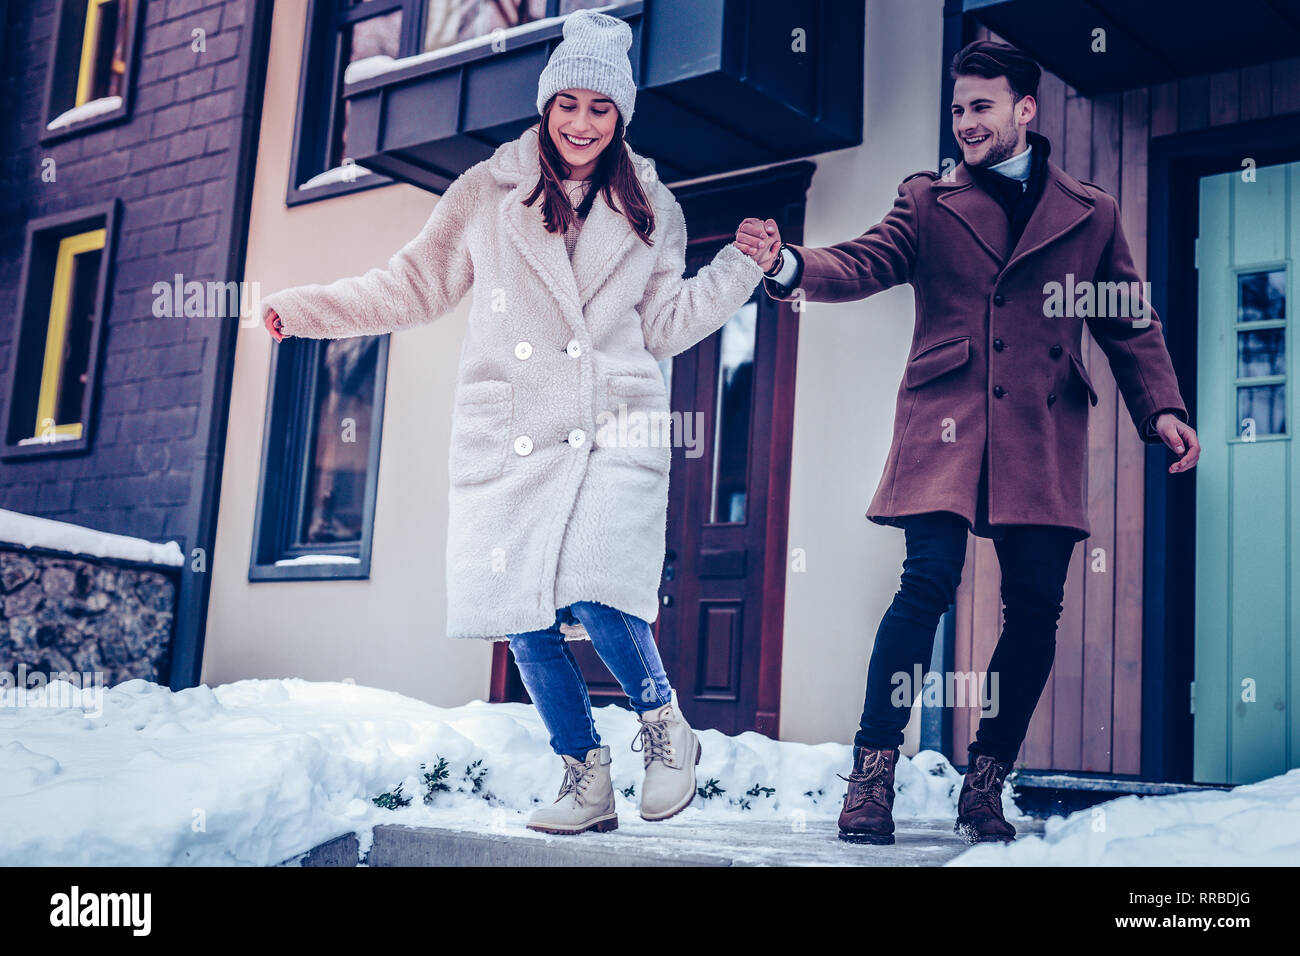 Man holding hand of his wife walking on slippery ground - Stock Image